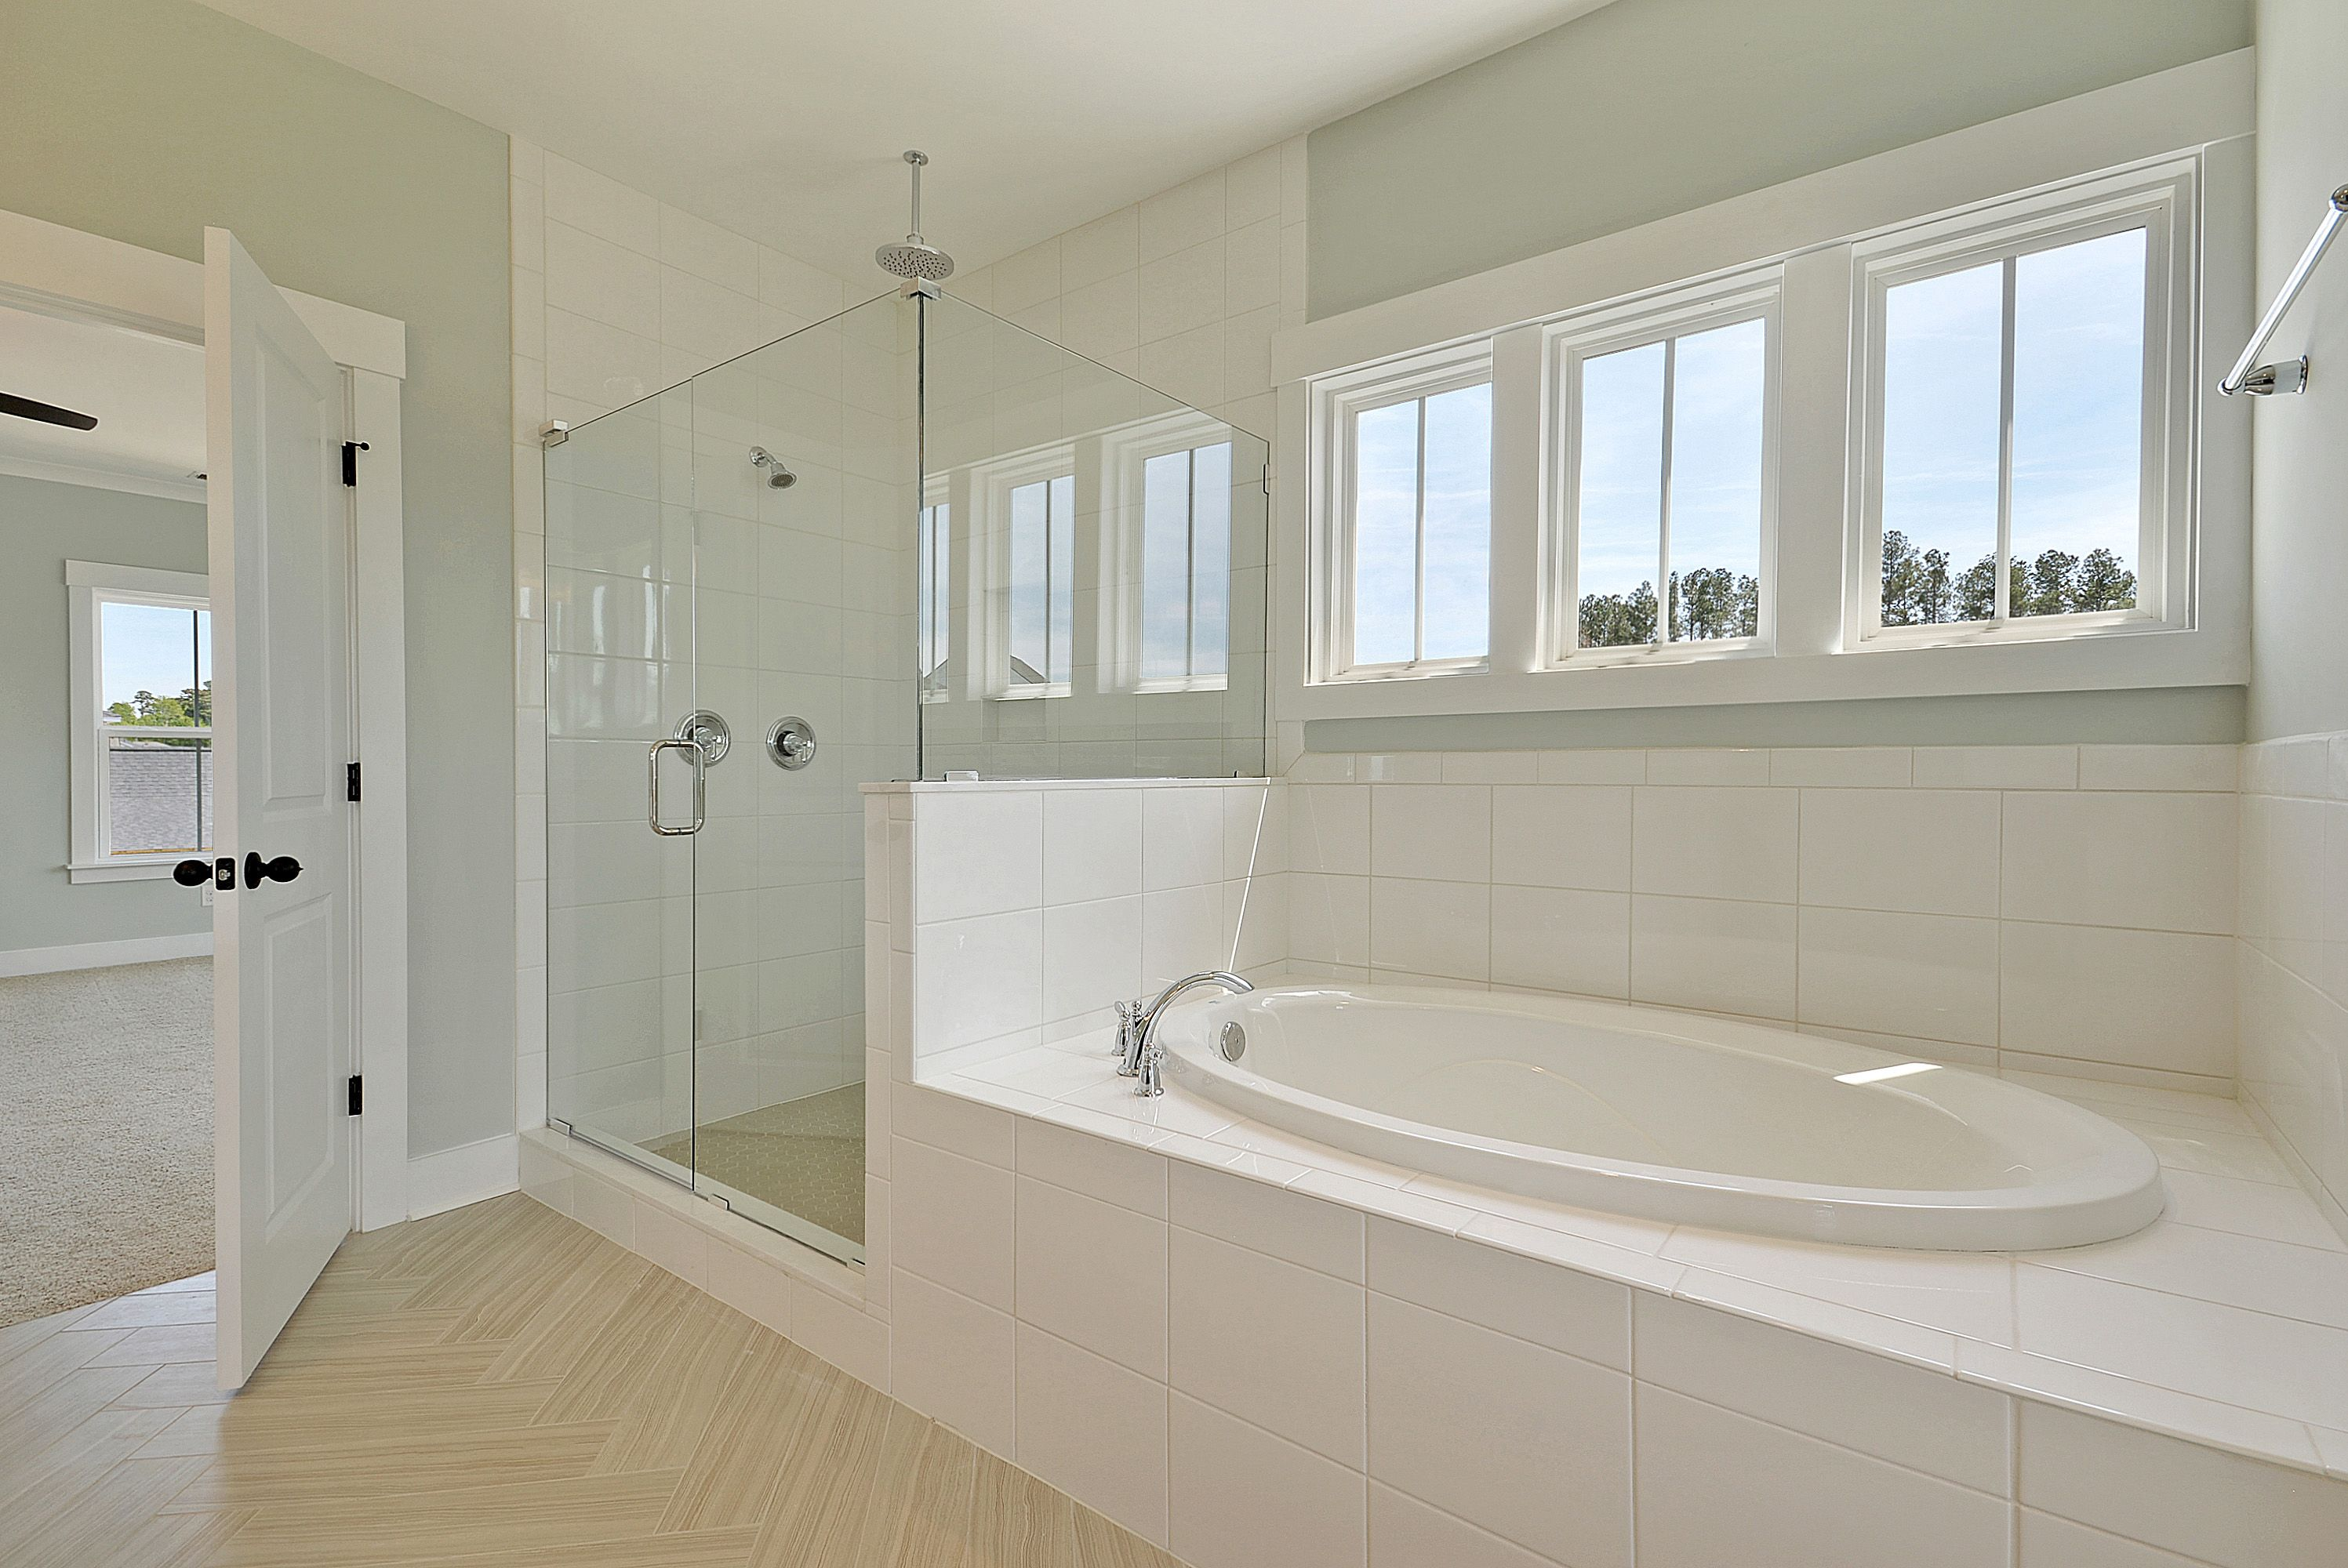 Bathroom featured in the Sangaree By Ashton Woods in Charleston, SC